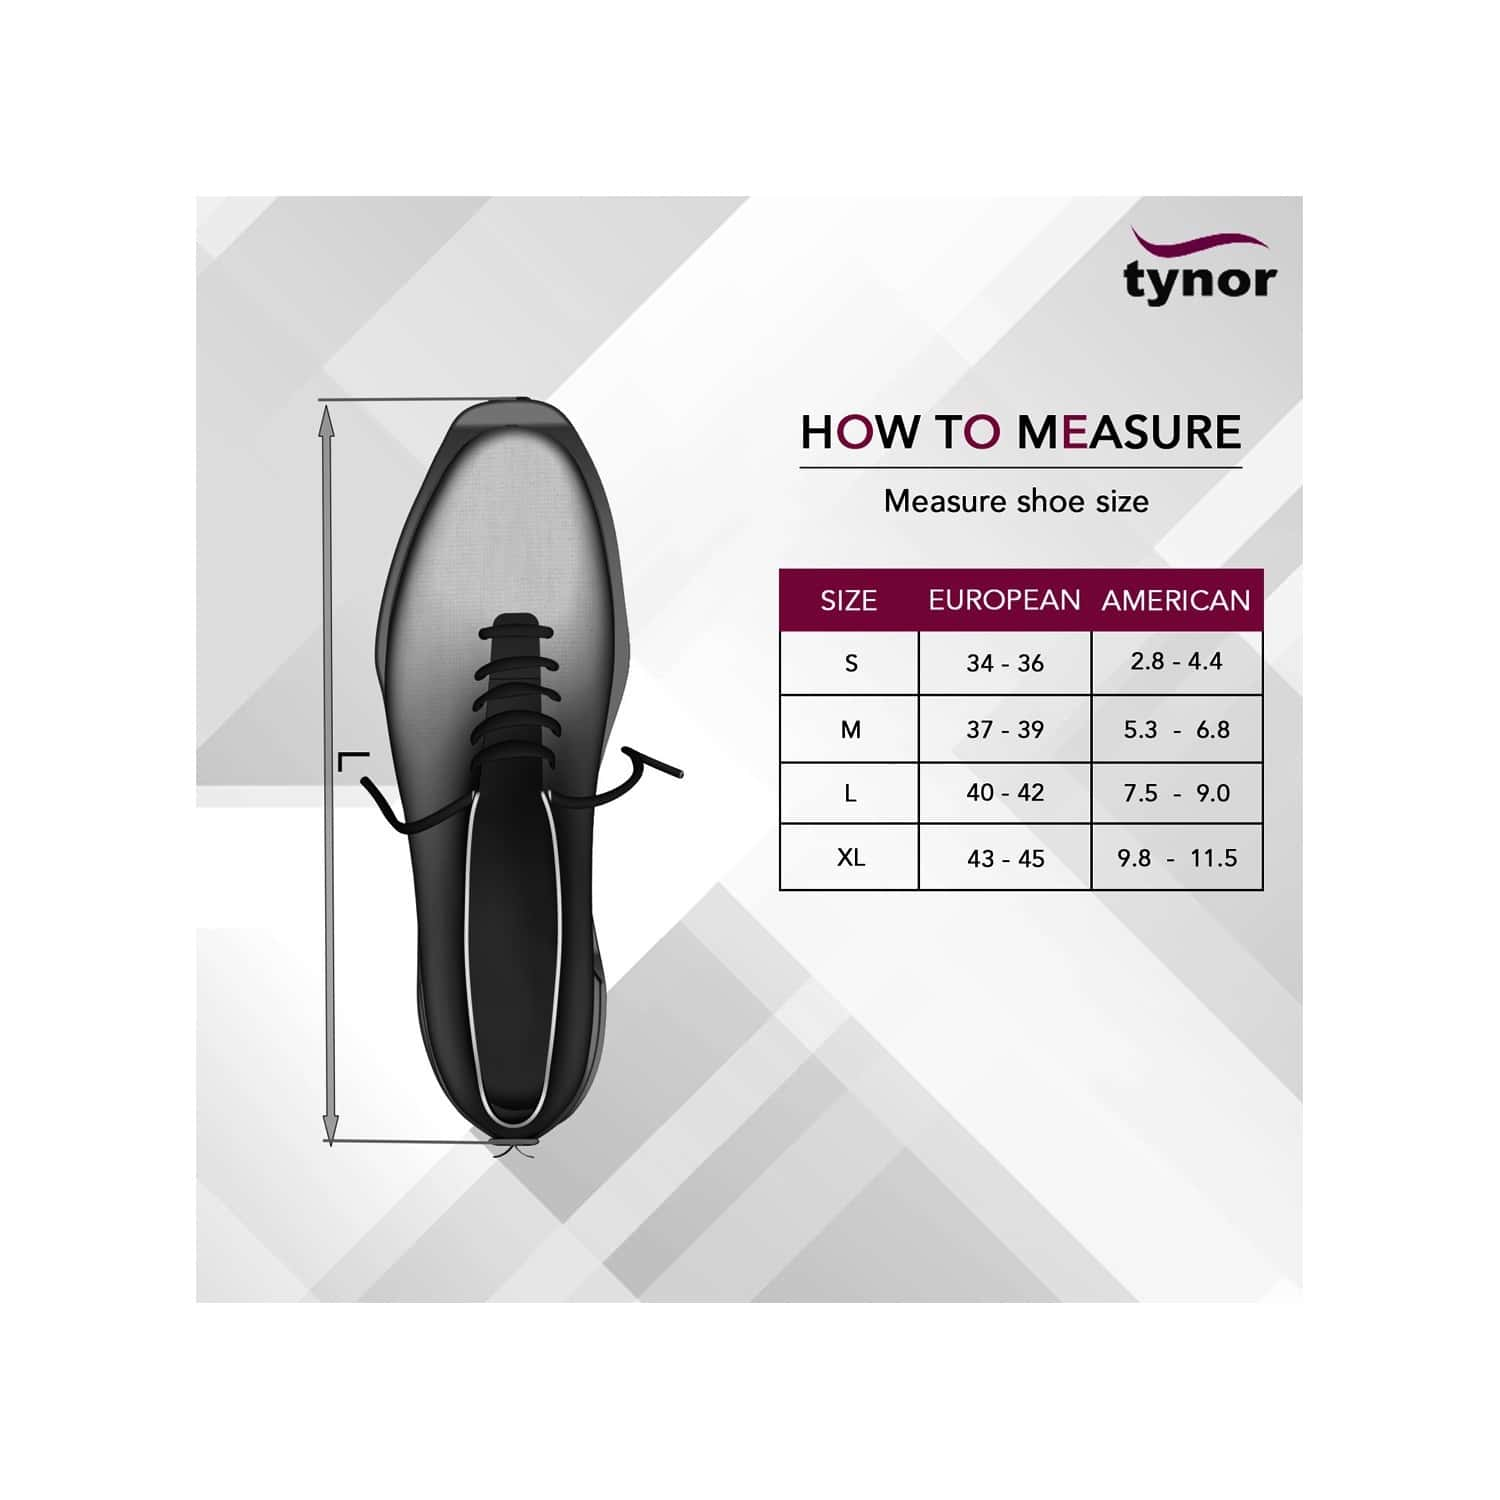 Tynor Heel Cushion Silicone ( Comfortable,odorless,pain Relief) - Xl